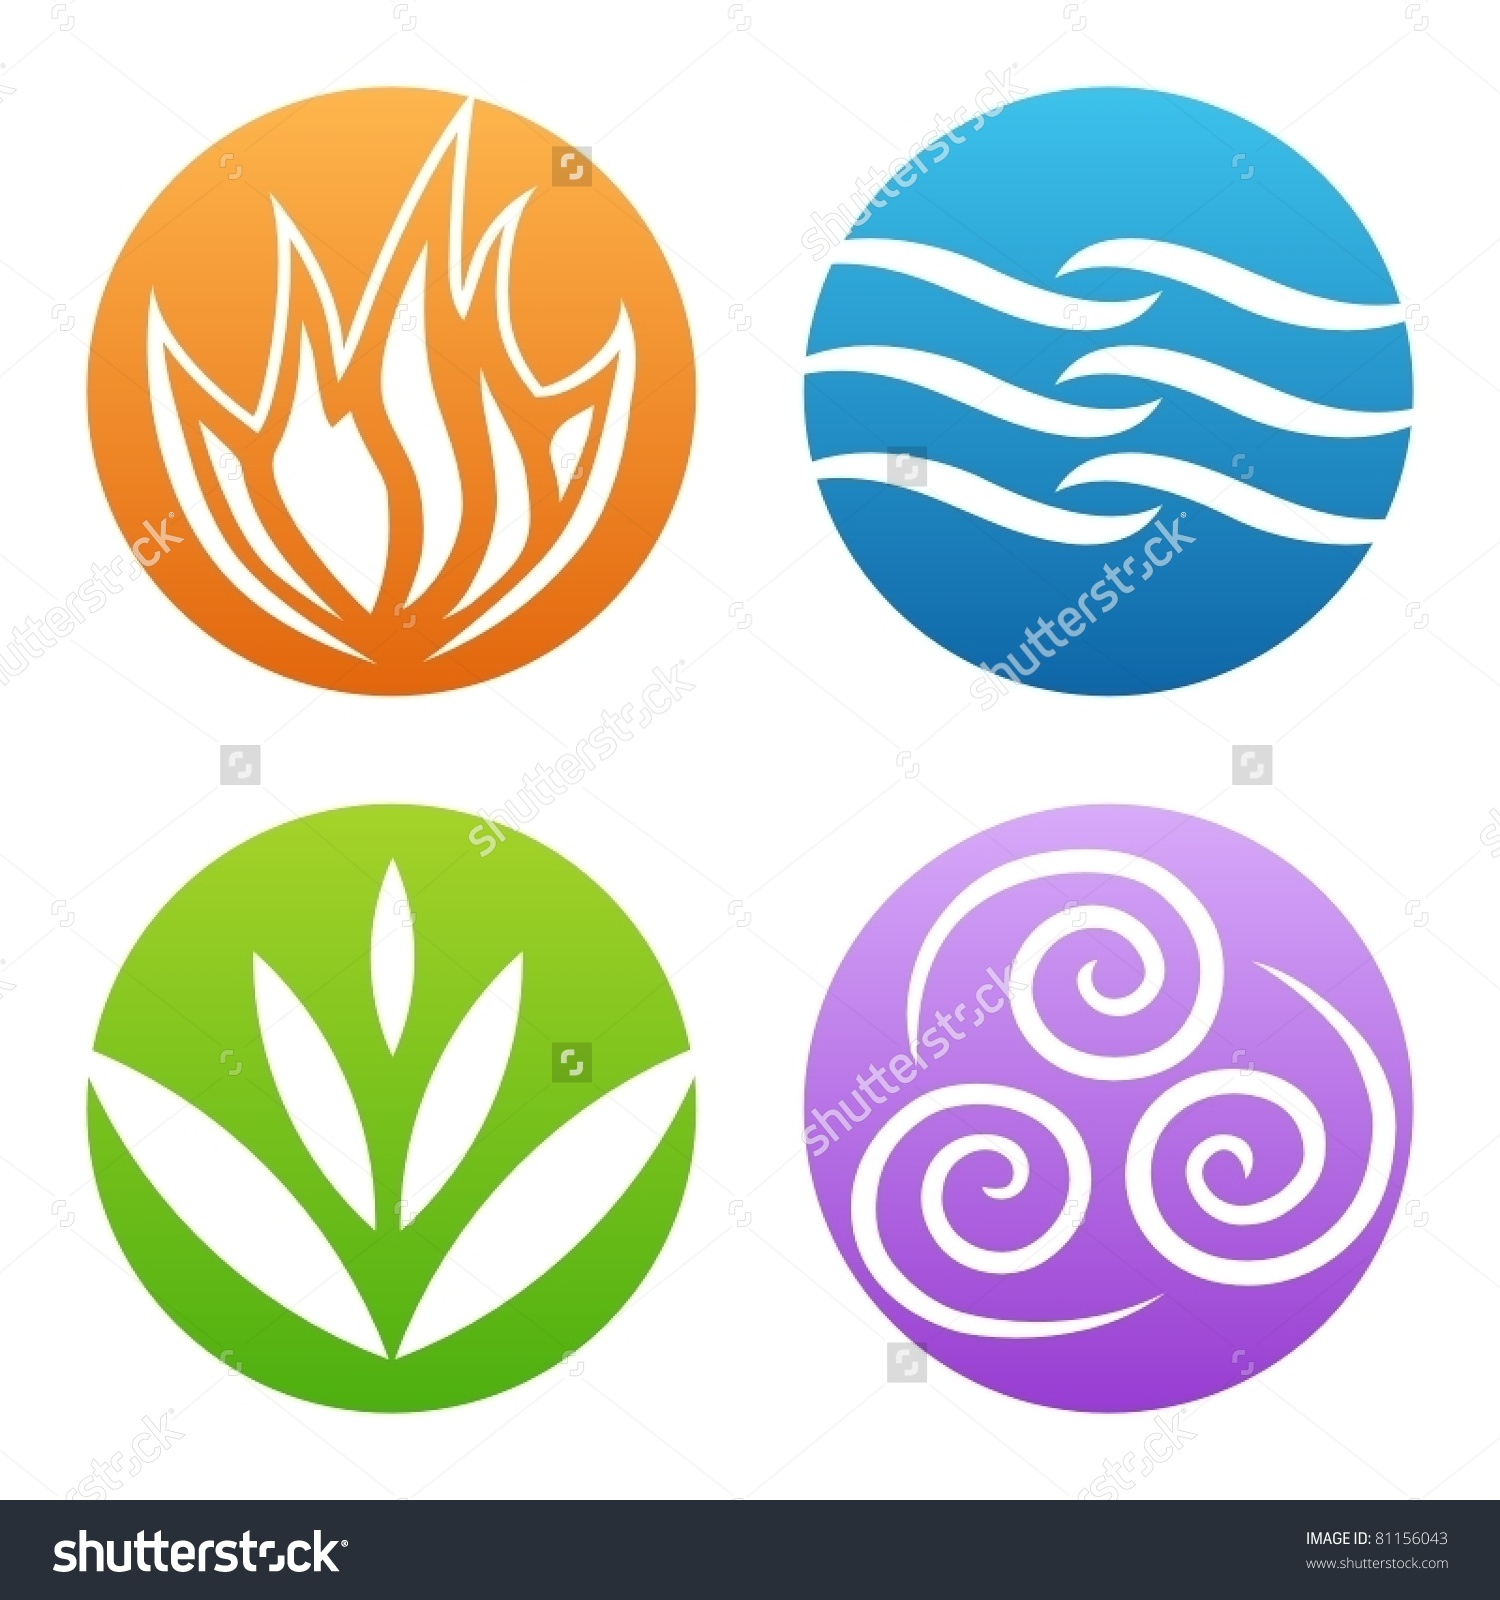 Element clipart ornamental Wind  Vector Art Water